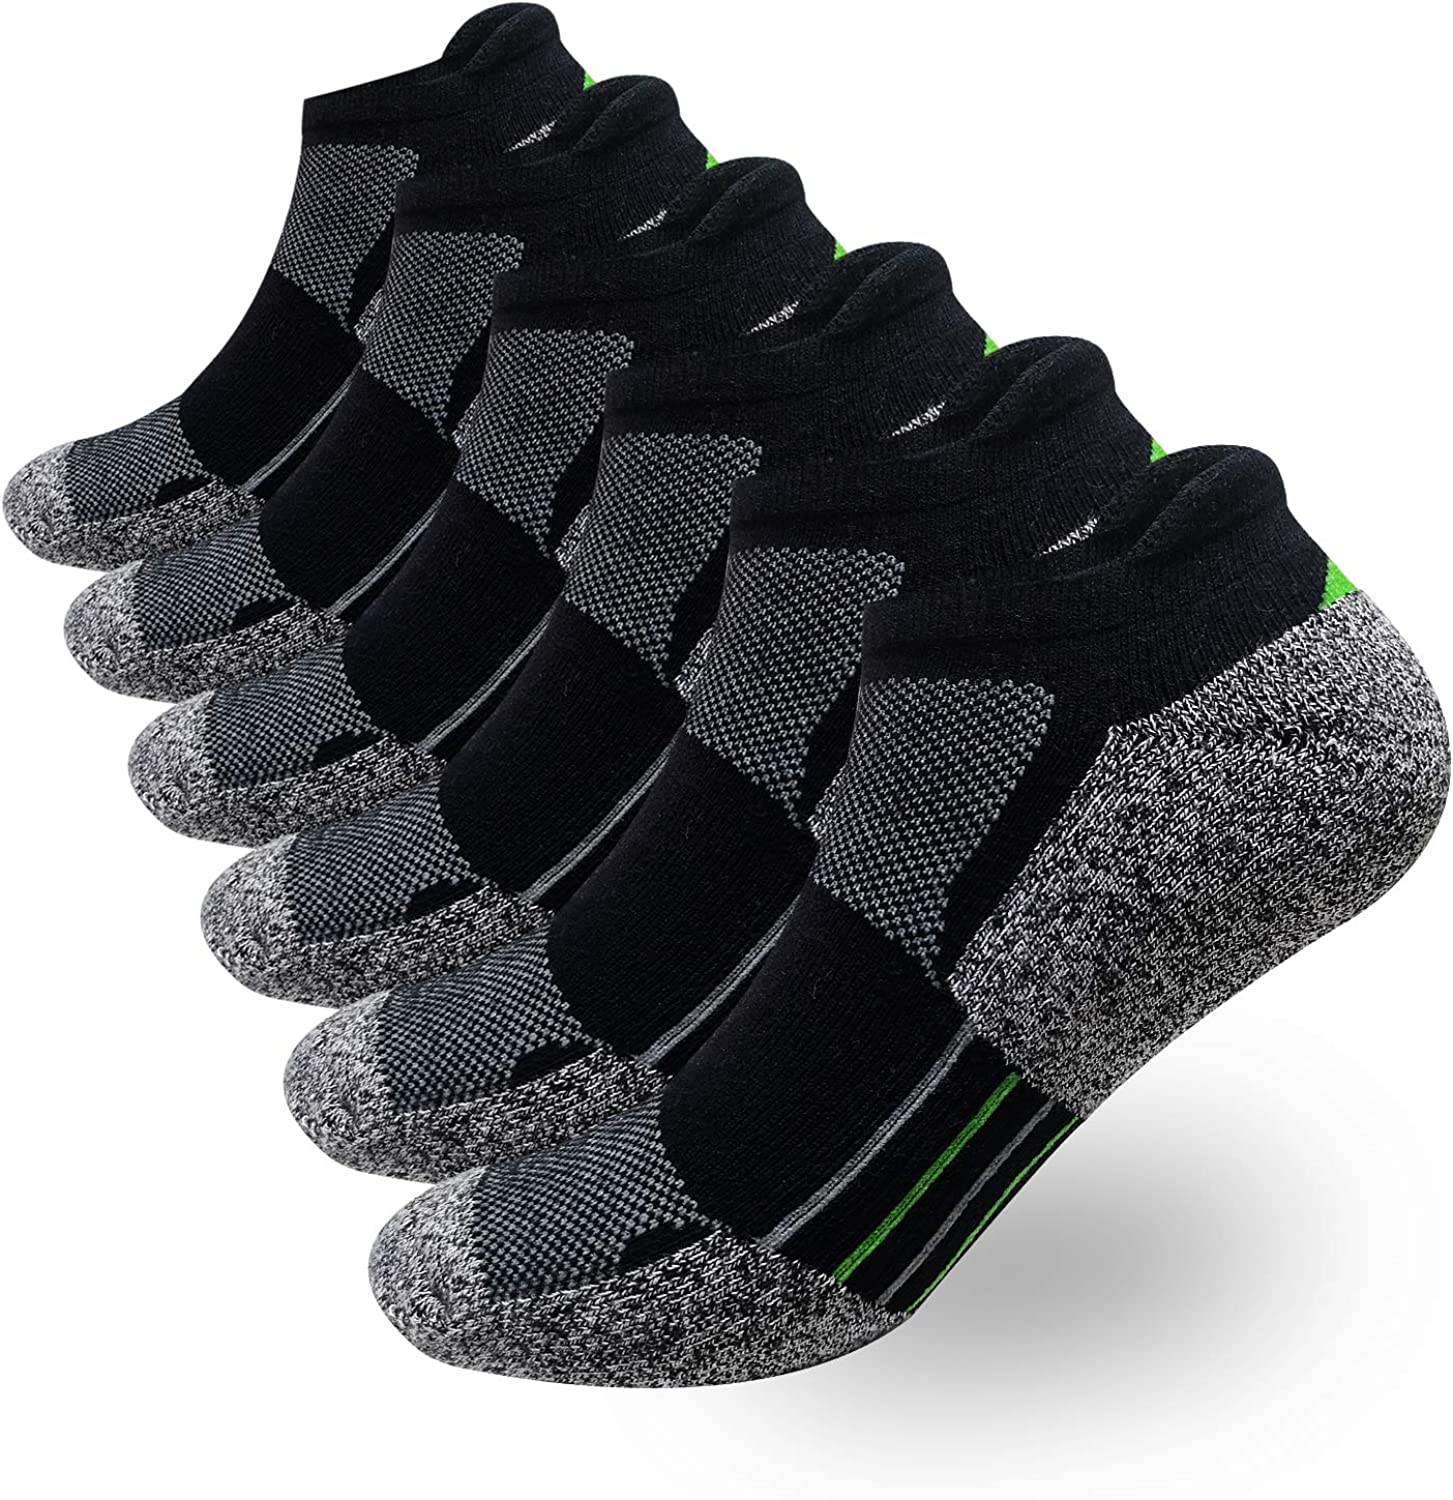 Men's Low Cut Athletic Socks Performance Comfort No Show Running Socks Sports Cushioned Tab